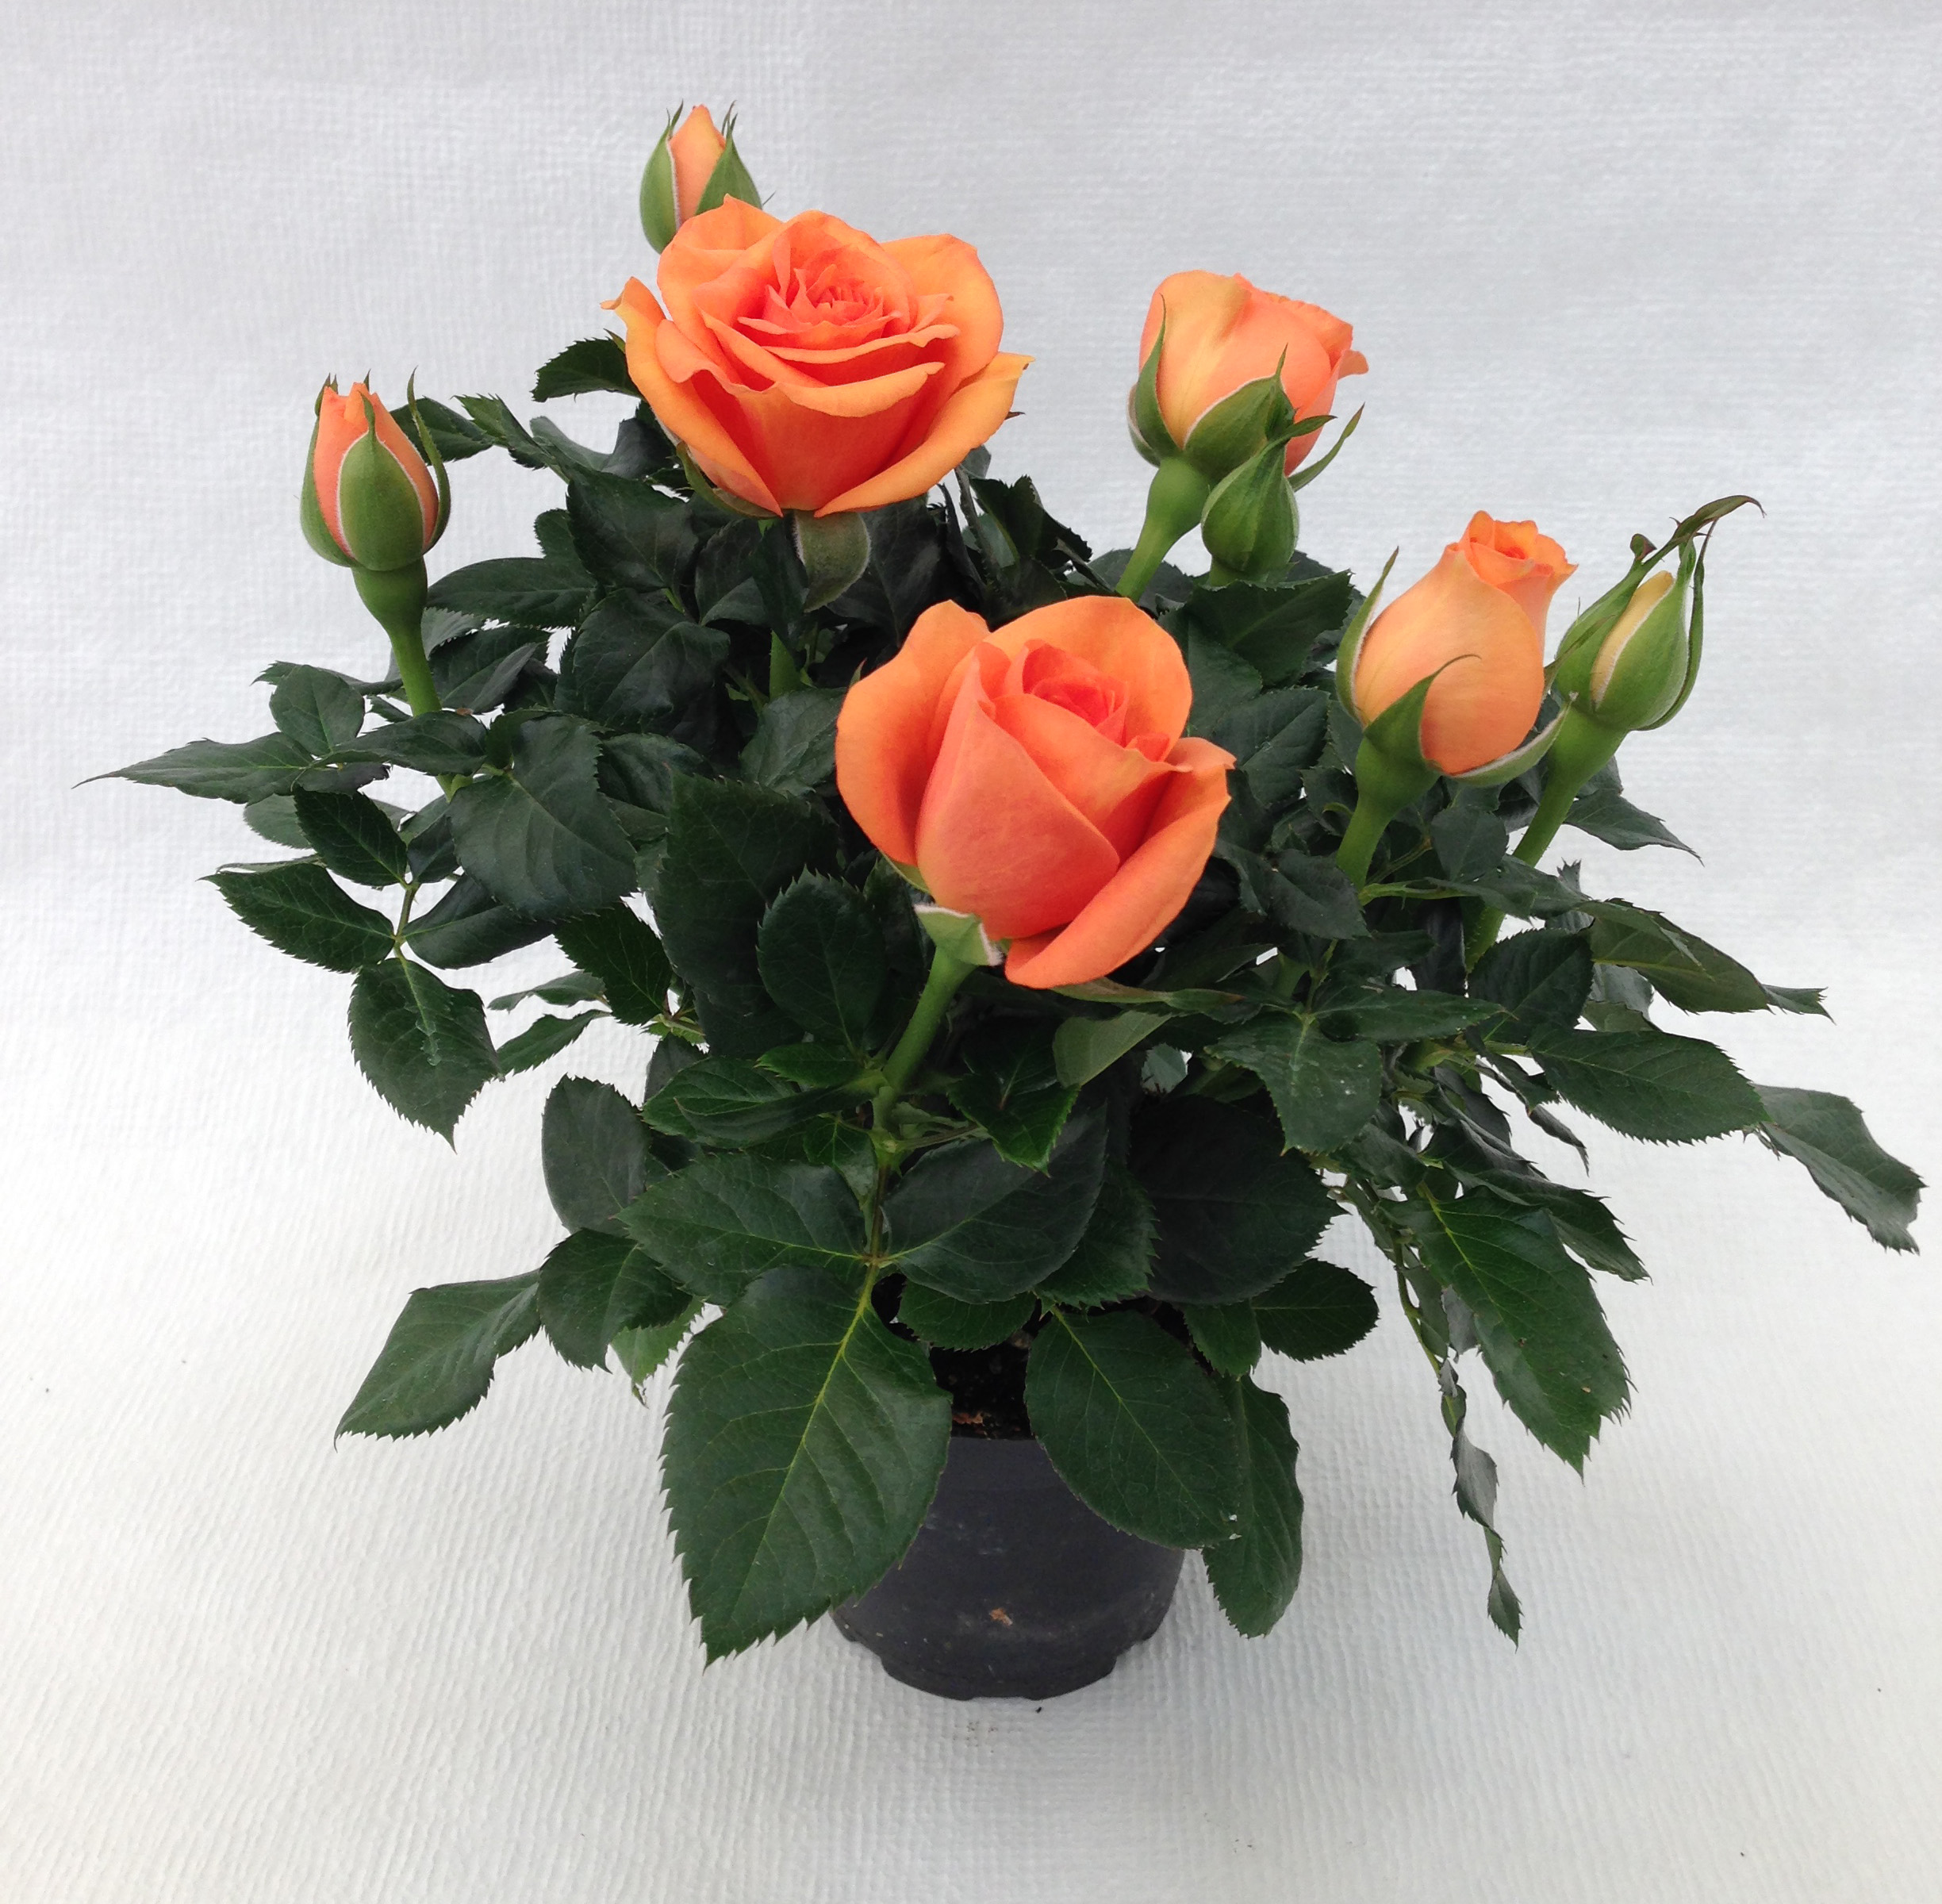 Mini rose in gold is highly wanted roses forever for Roselline in vaso